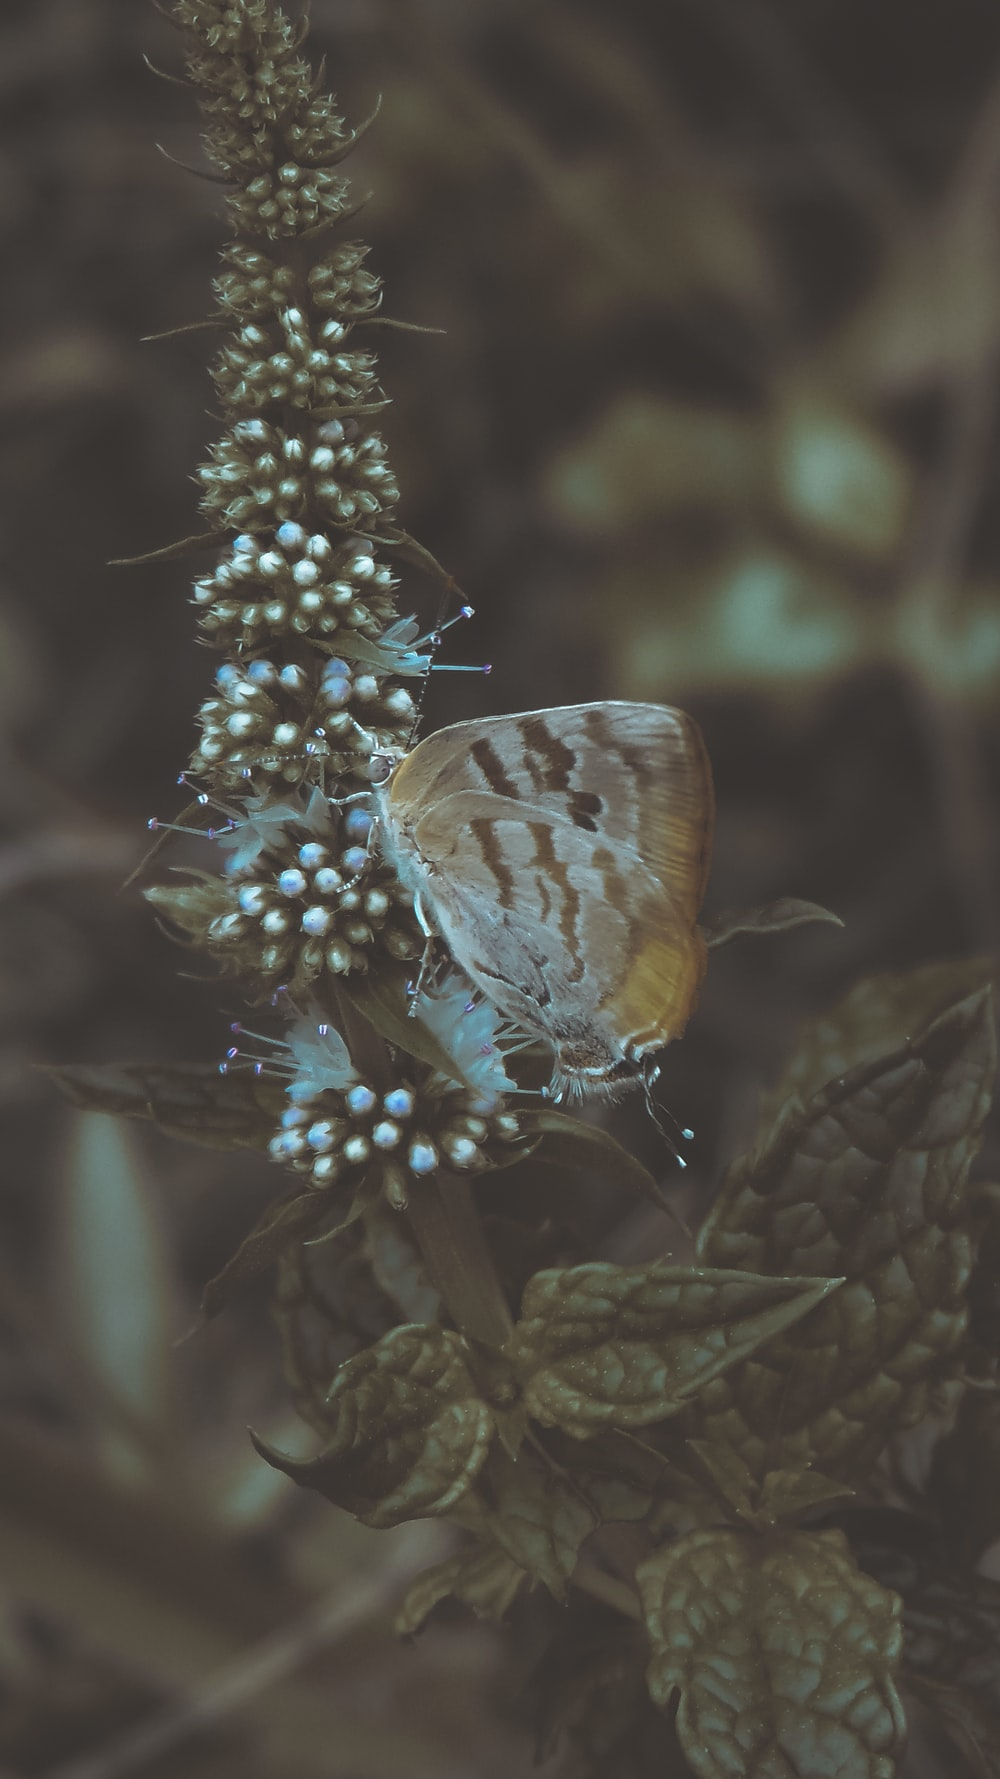 brown and white butterfly perched on blue flower in close up photography during daytime